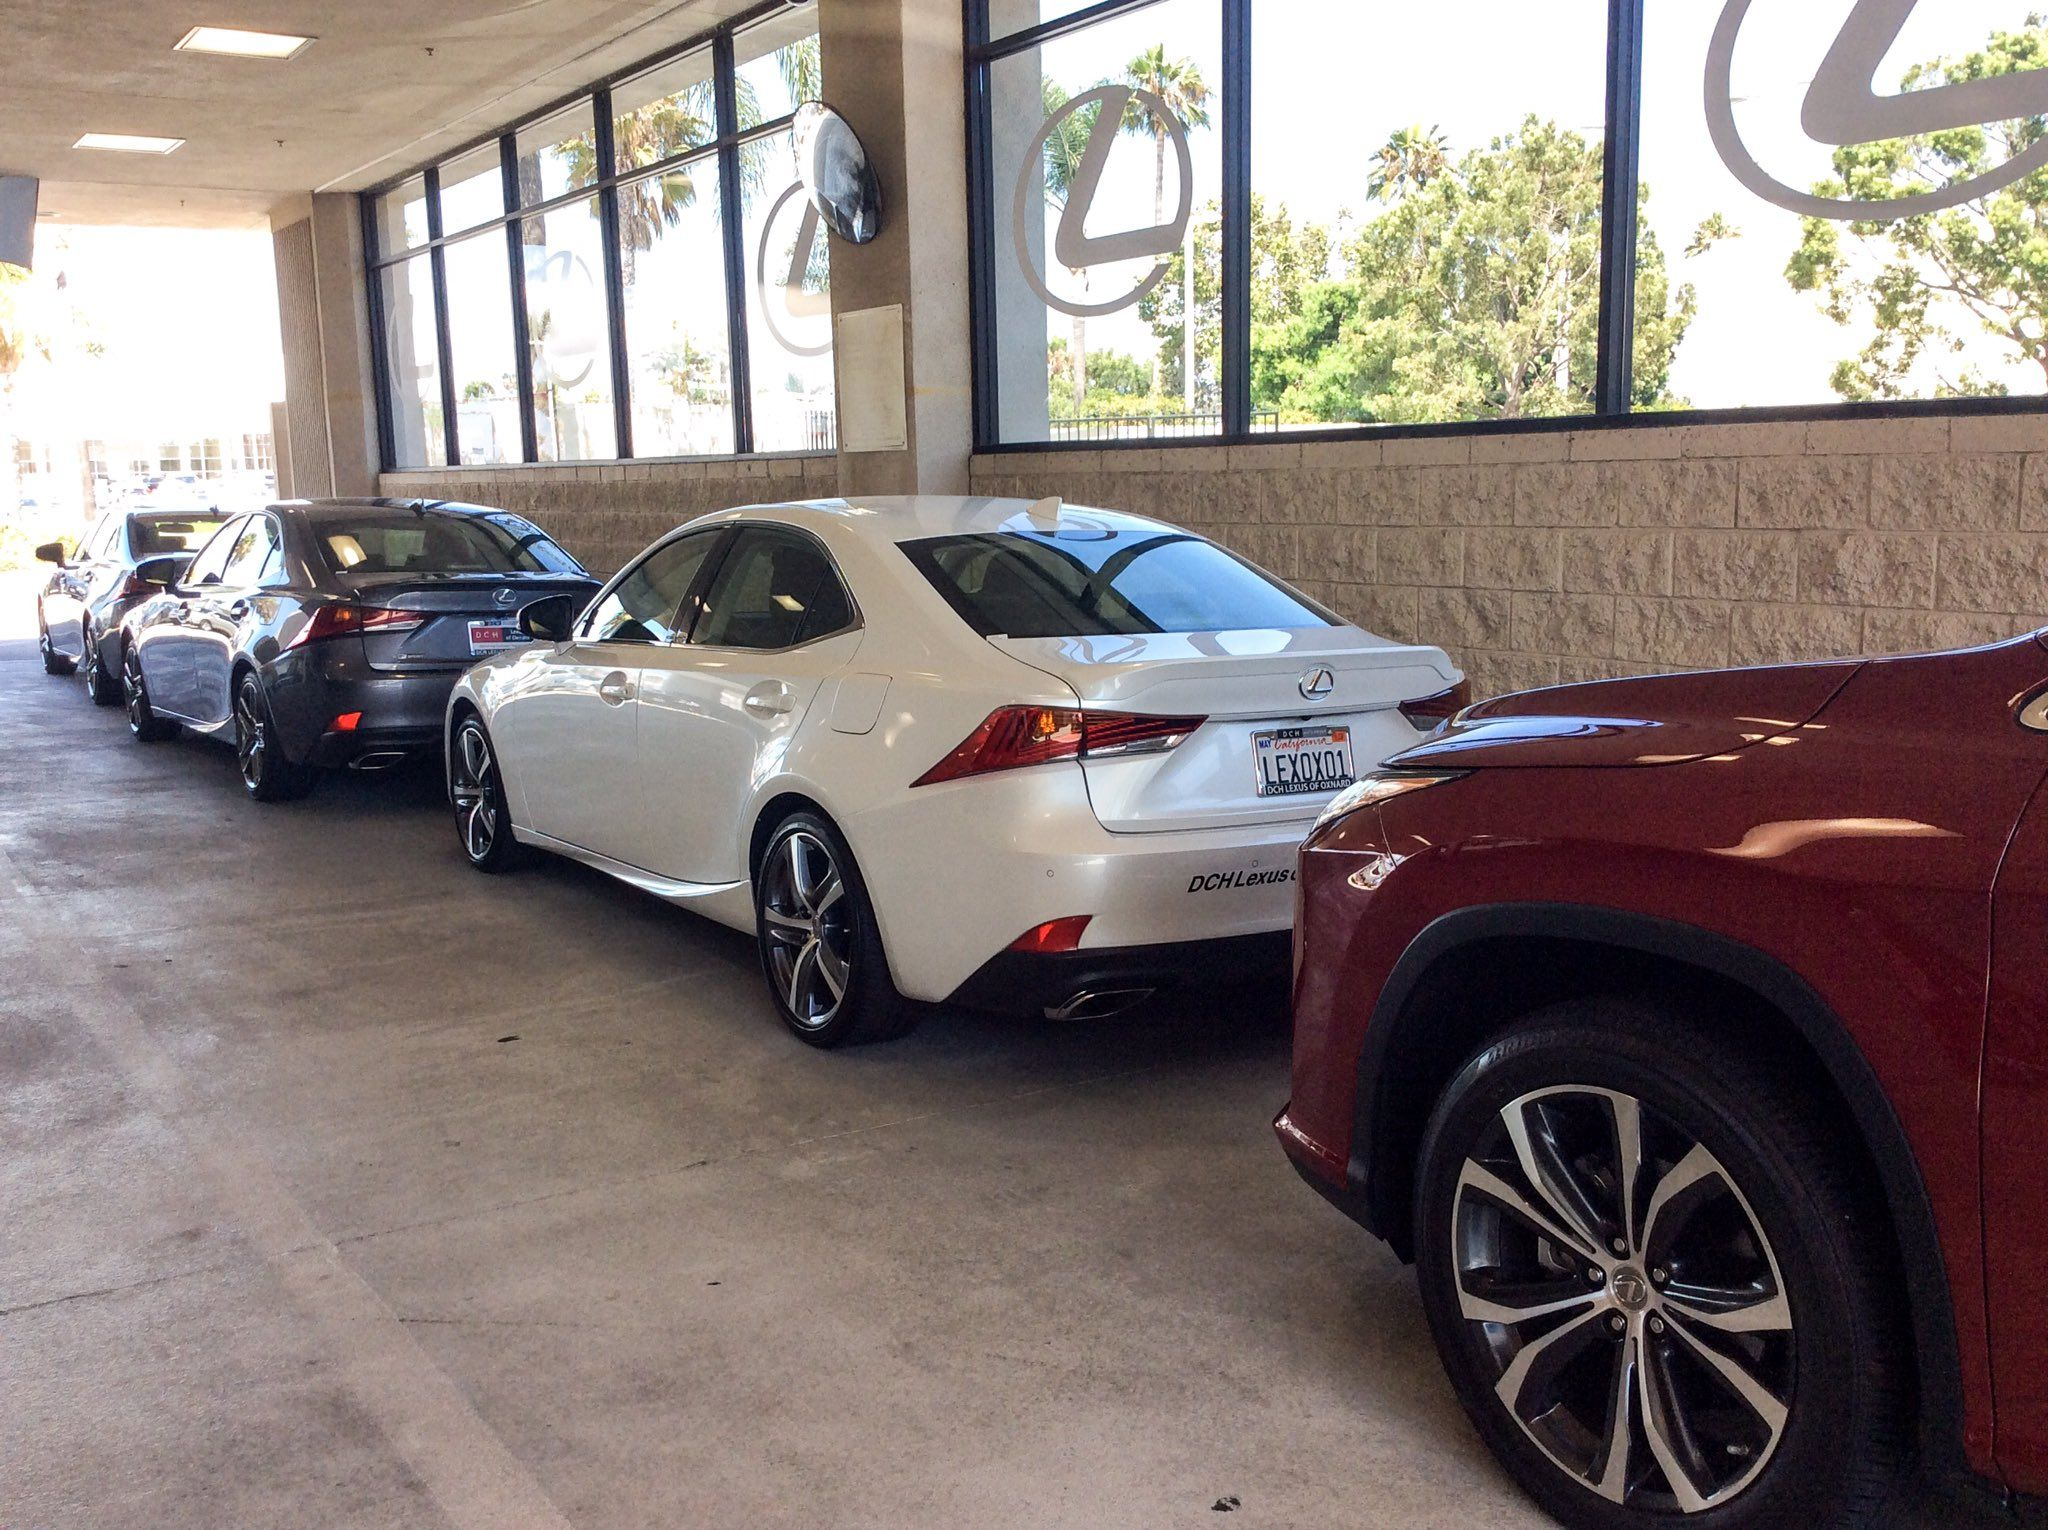 dchlexusofoxnard on twitter different kinds of lexus loaner cars are standing by please call our service department